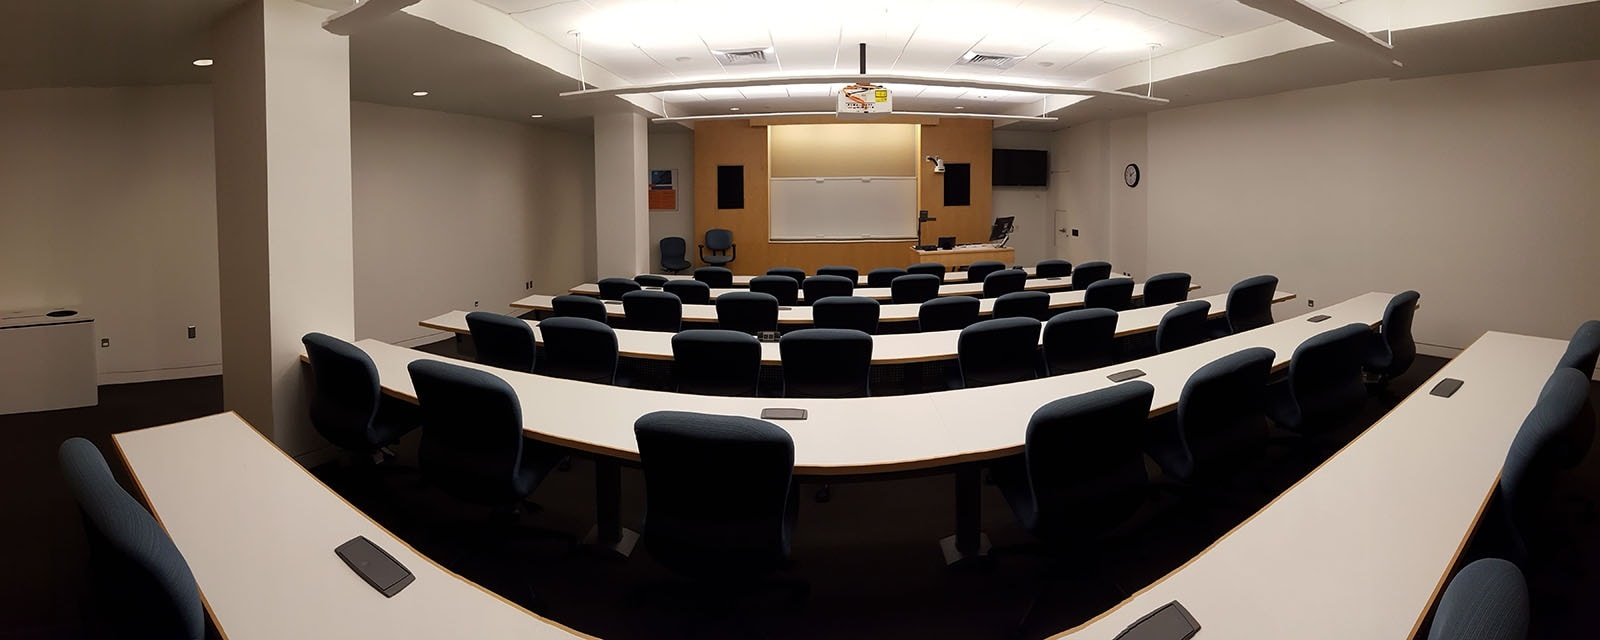 panorama of newhouse 3 250 from rear of room movable chairs, teaching station front left